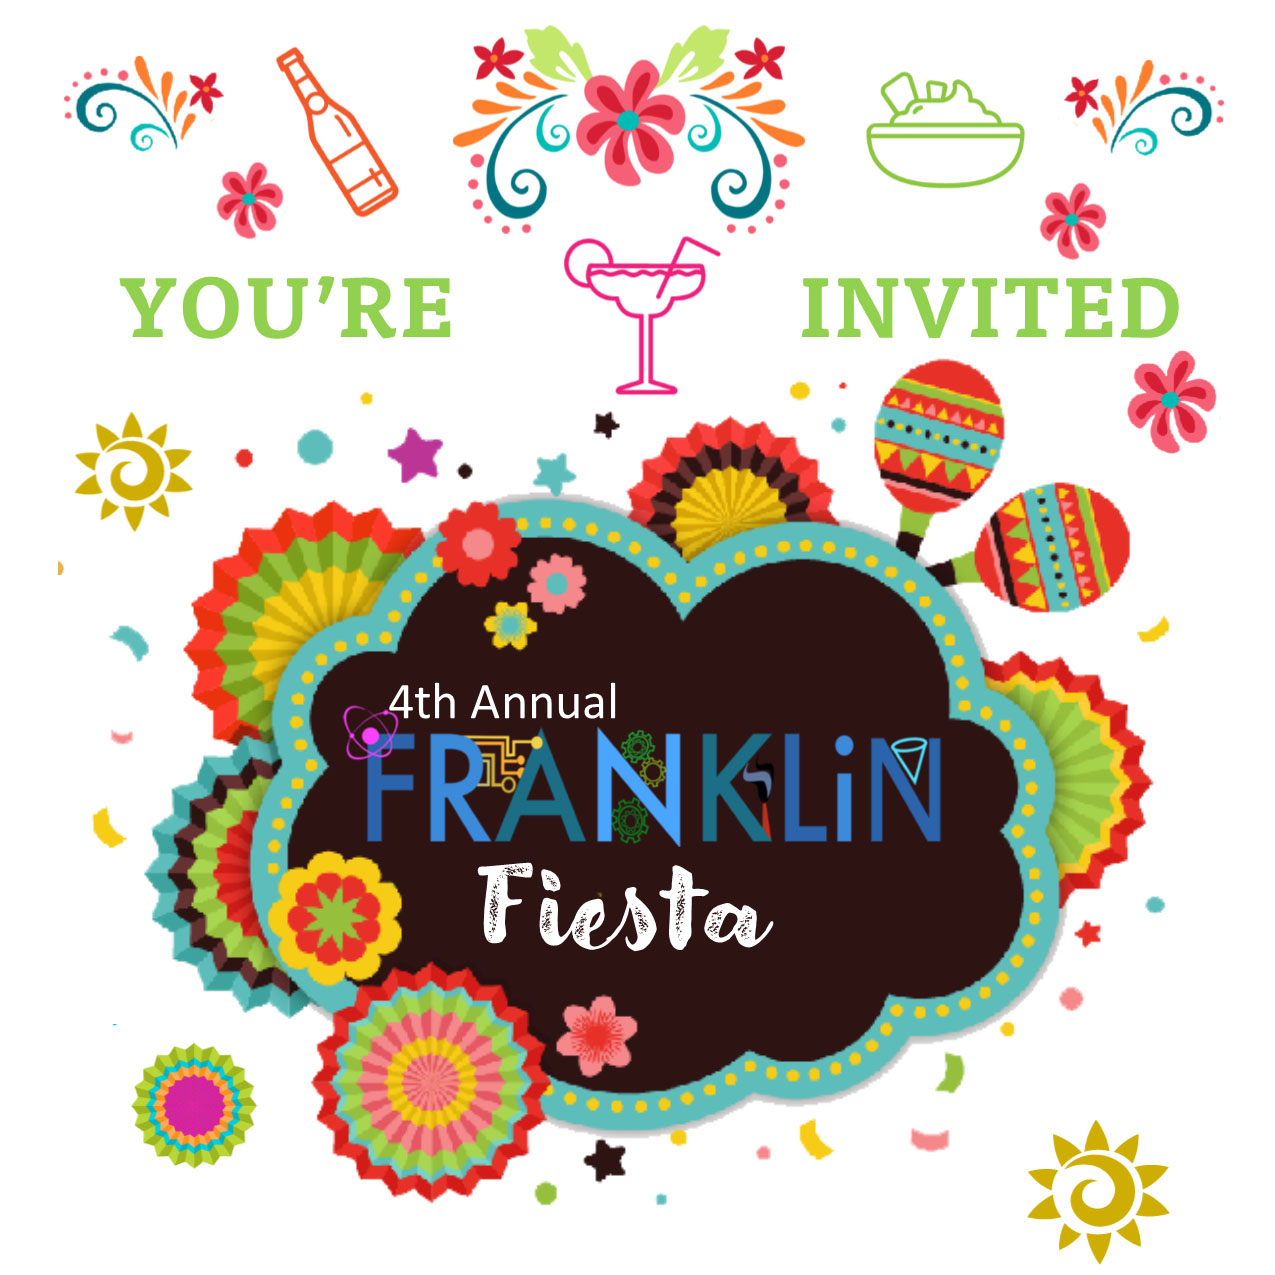 You're Invited to the 4th Annual Franklin Fiesta